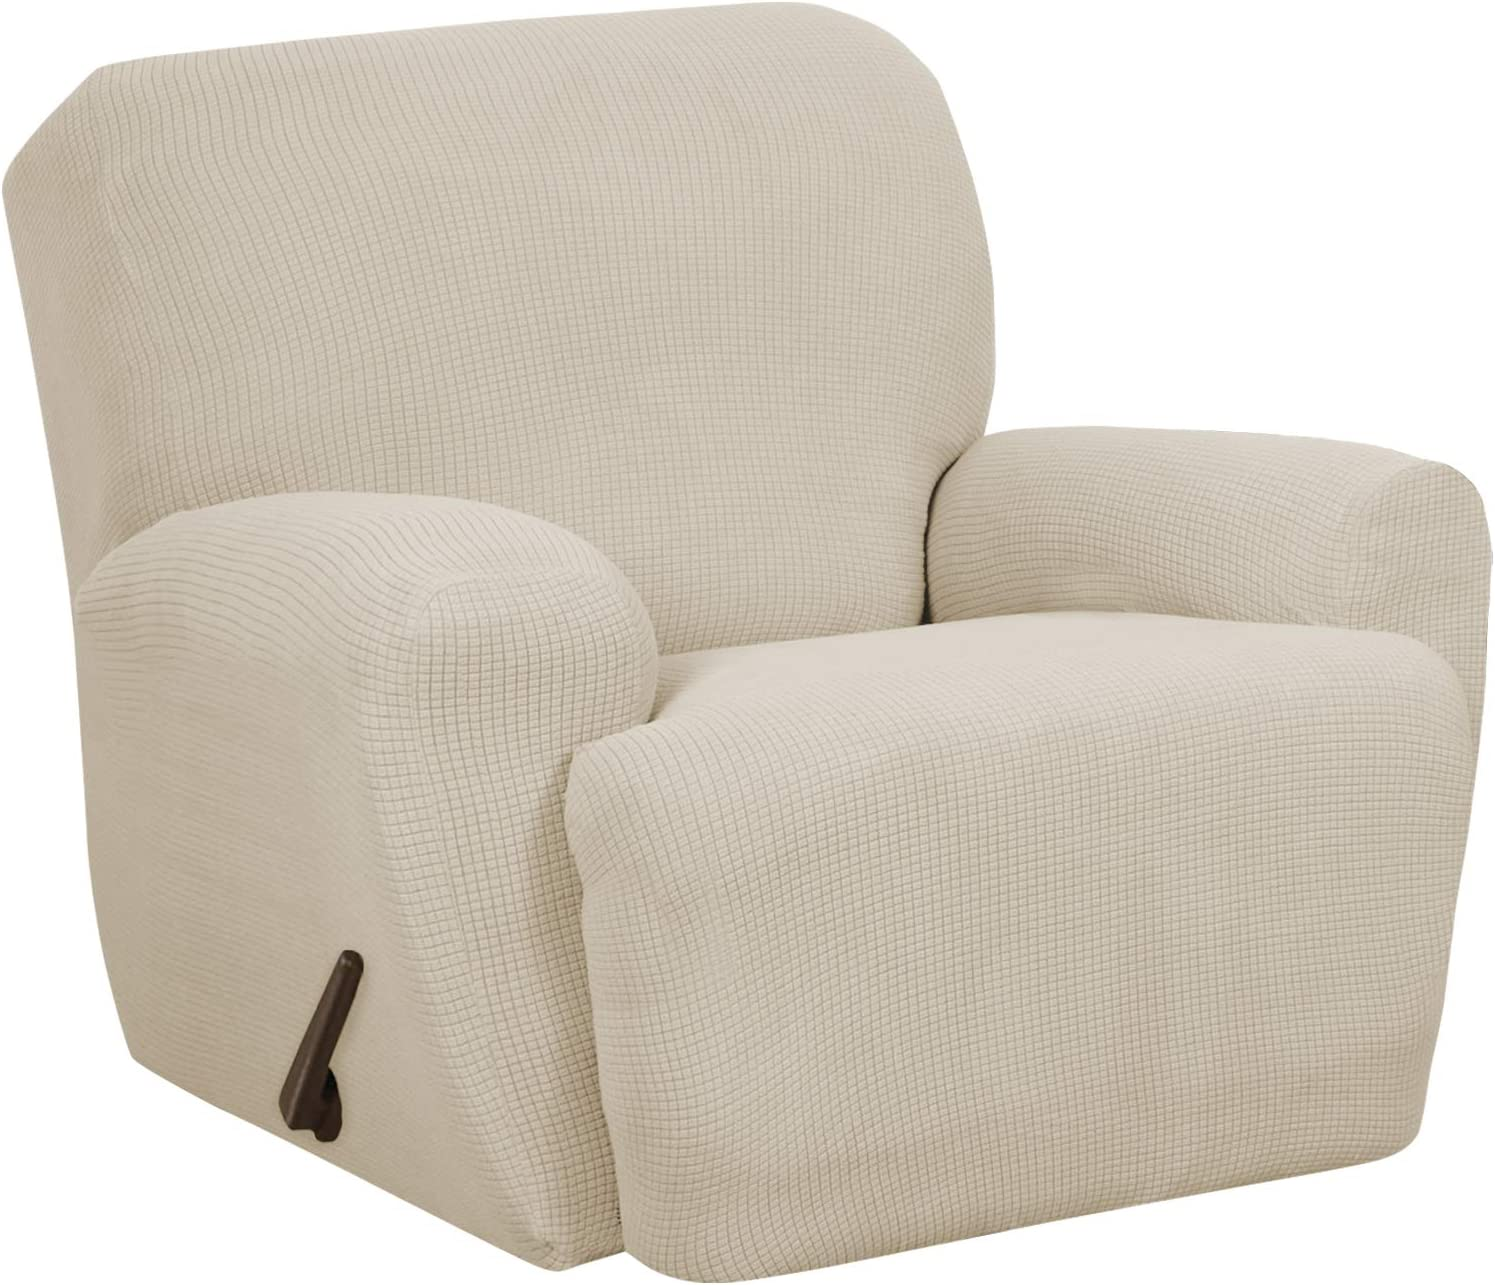 MAYTEX Reeves Stretch 4-Piece Recliner Arm Chair Furniture Cover/Slipcover with Side Pocket, Natural